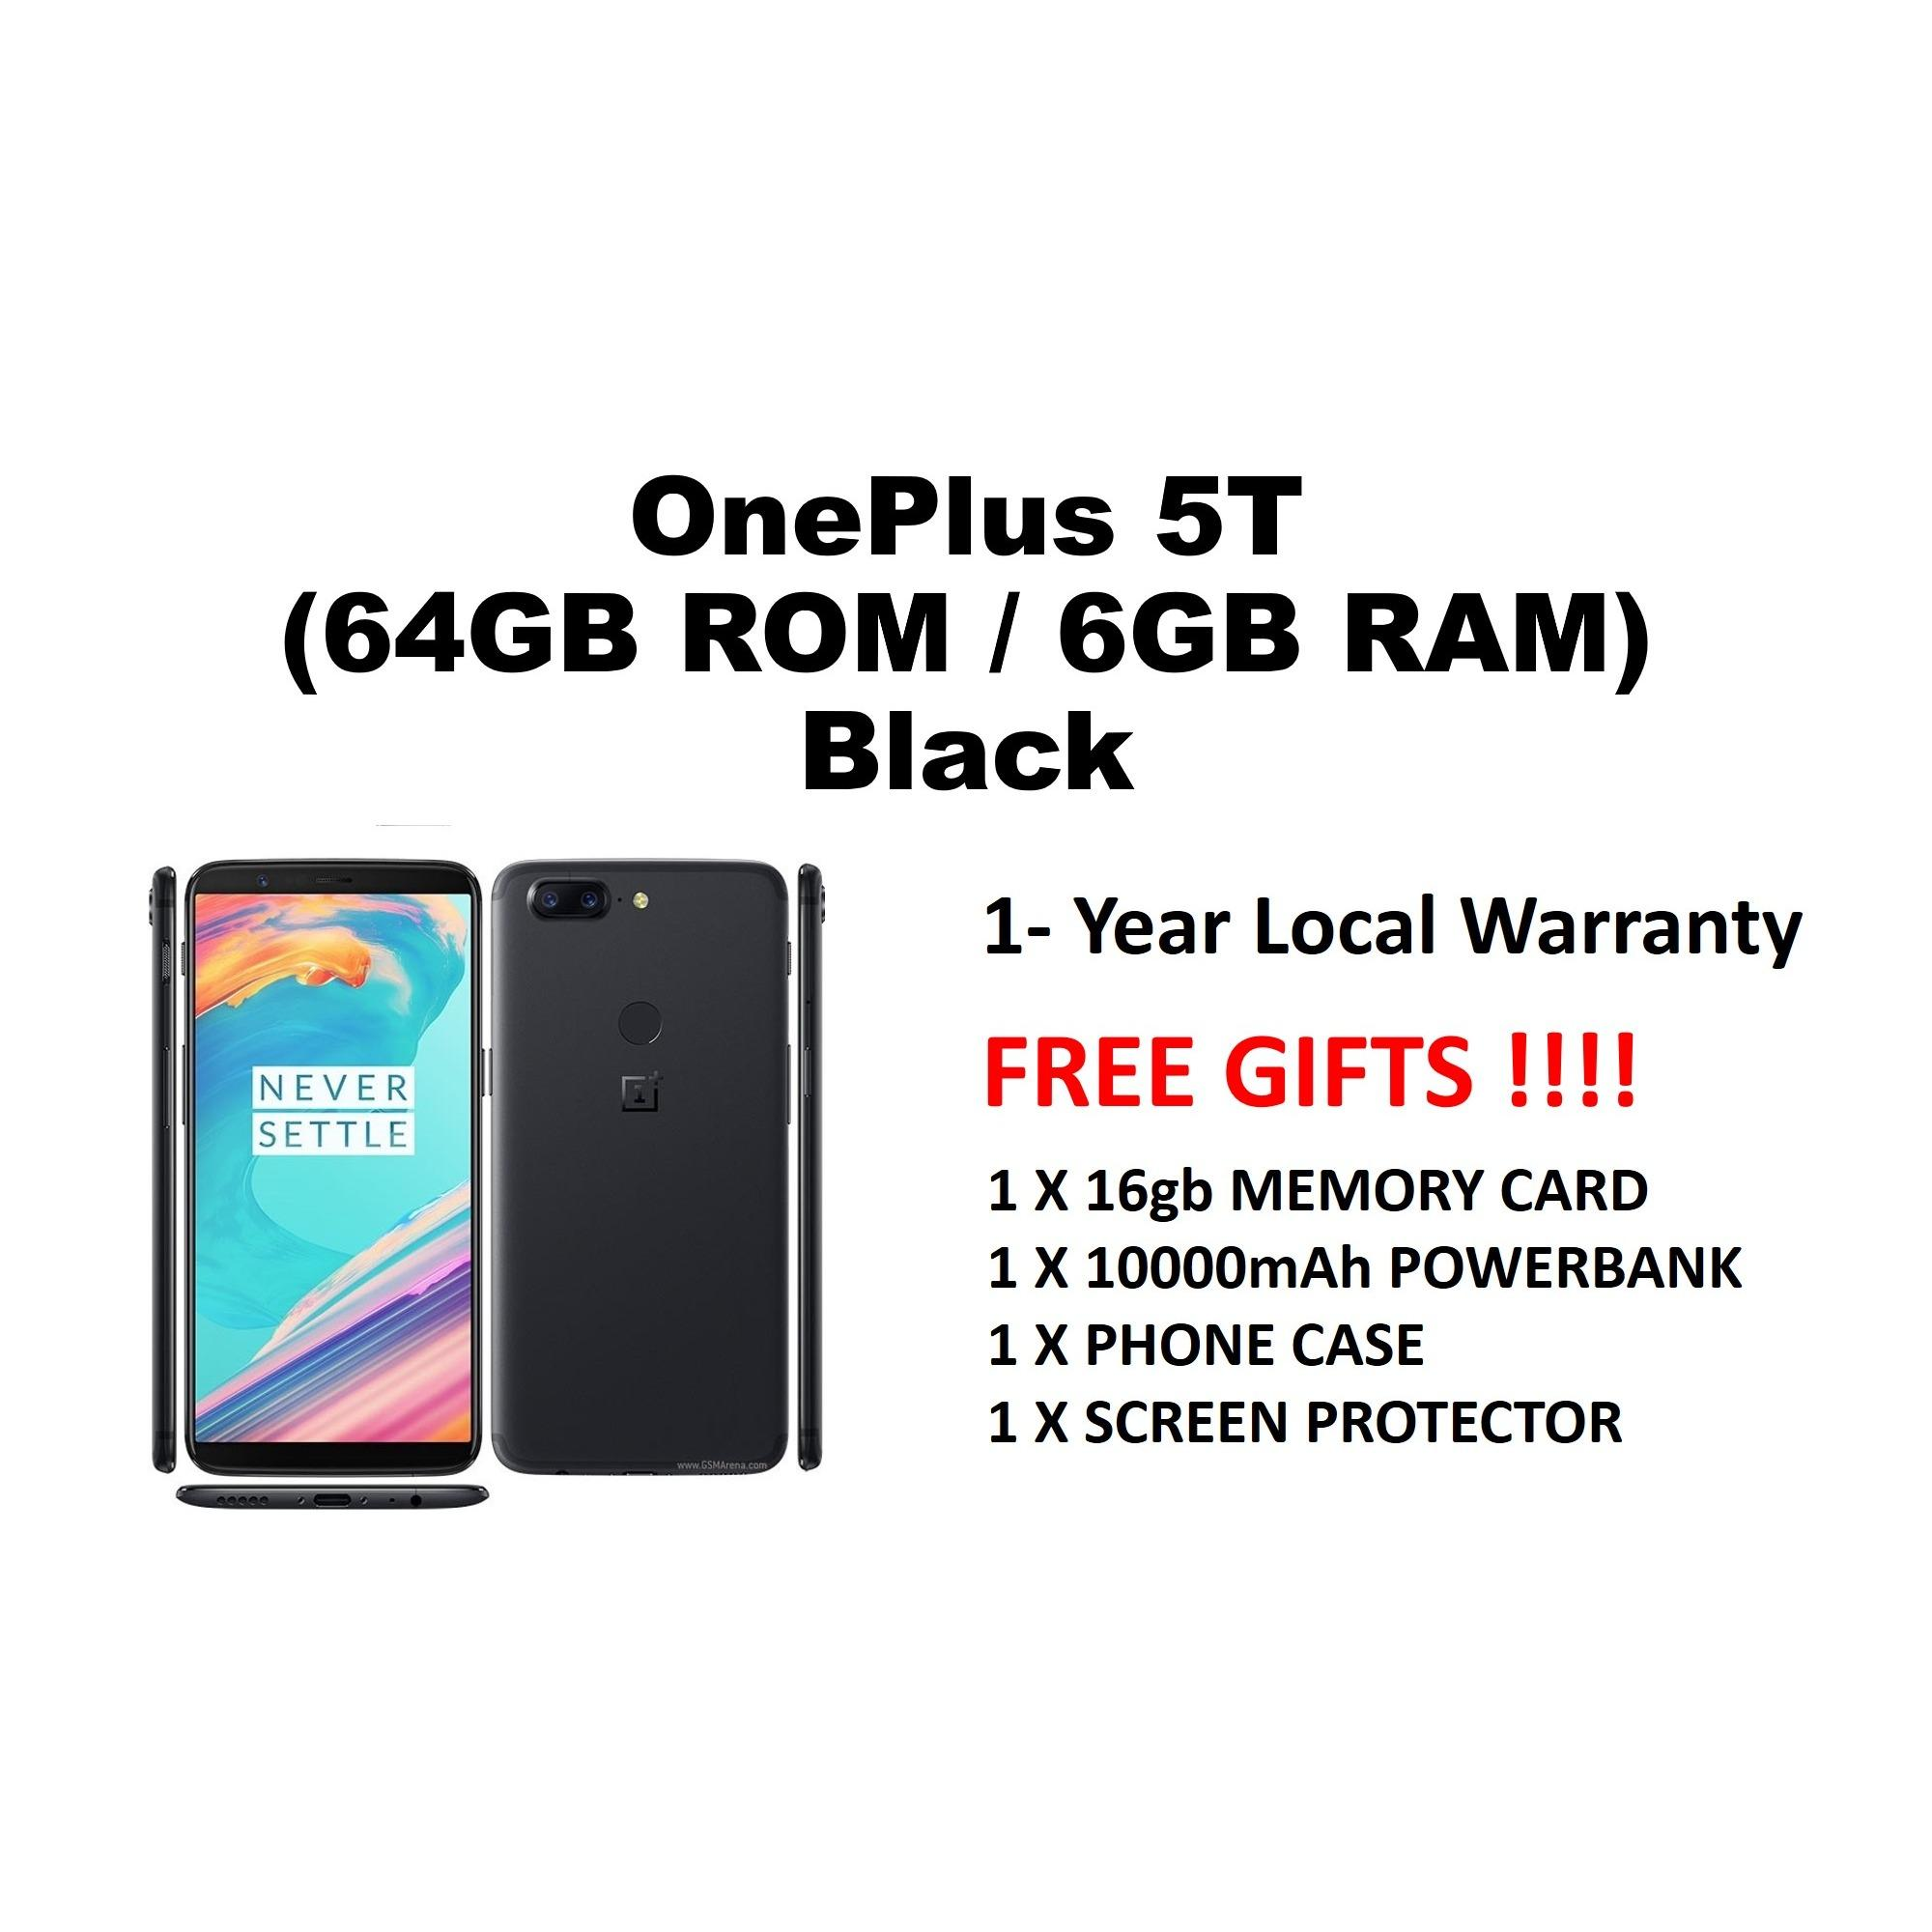 OnePlus 5T Black LOCAL SET 1 YEAR WARRANTY